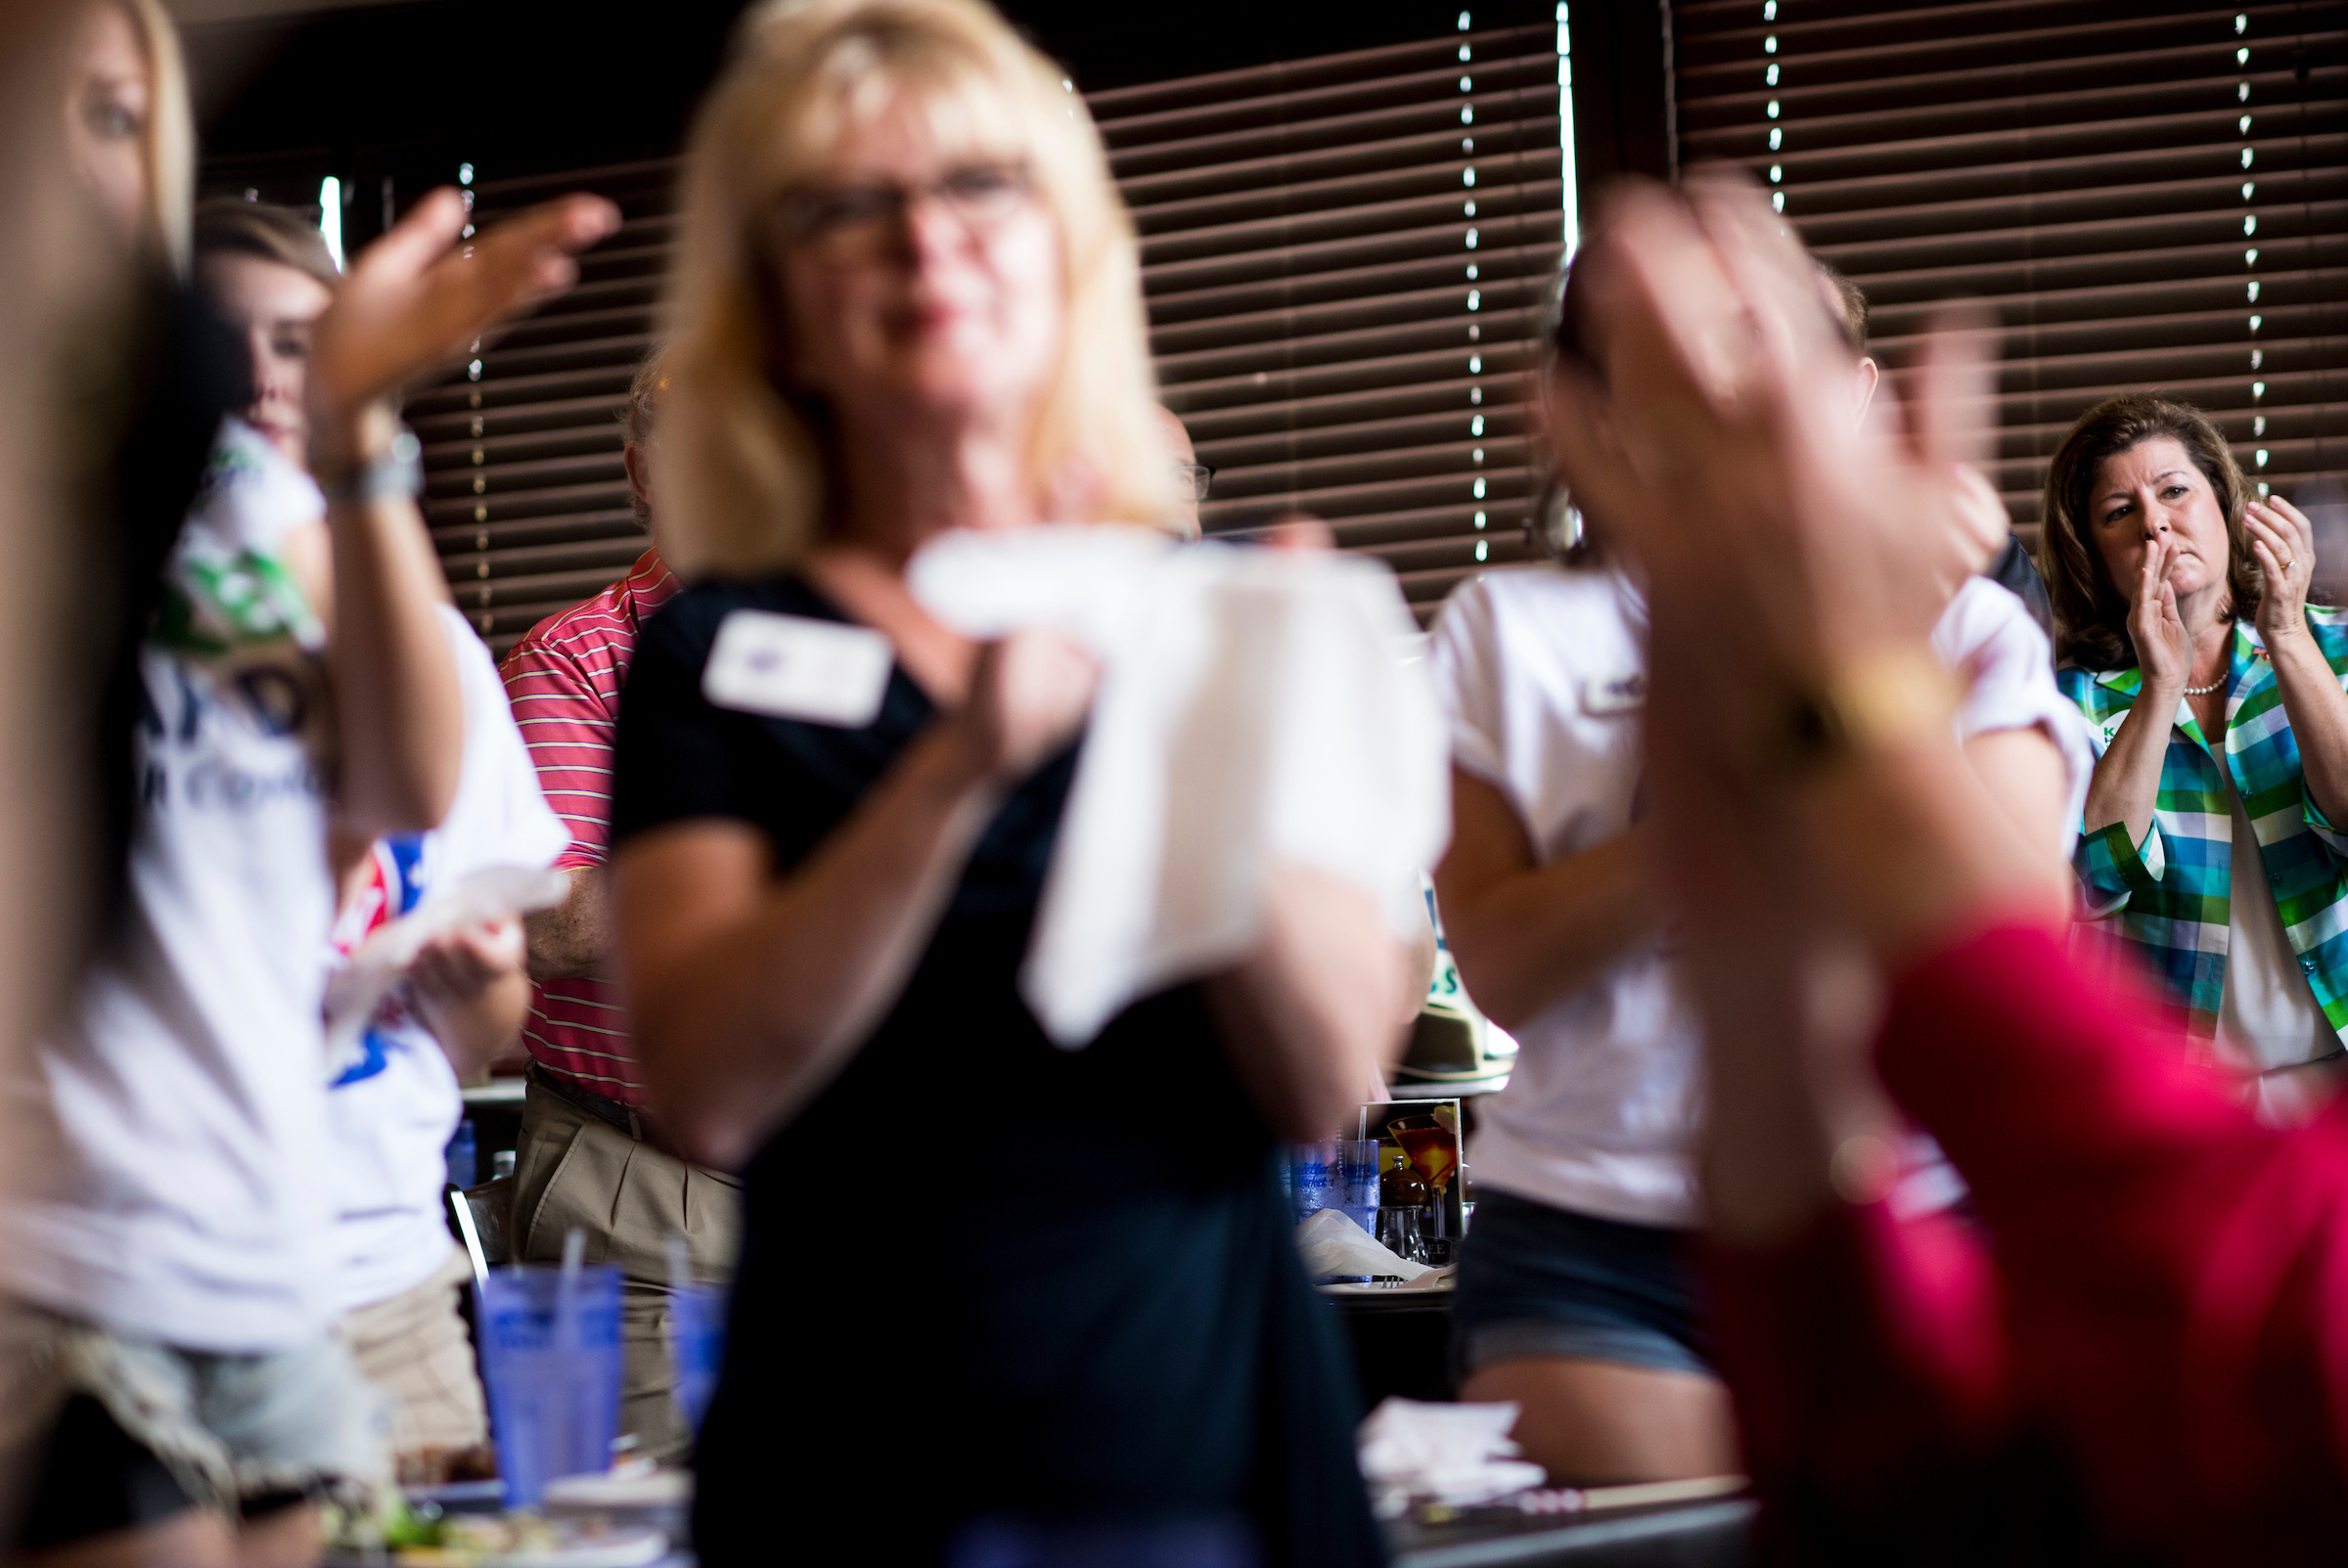 UNITED STATES - JUNE 19: Republican candidate for Georgia's 6th Congressional district Karen Handel claps during a rally with supporters at the Cherokee Cattle Ranch restaurant in Marietta, Ga., on the final day of campaigning on Monday, June 19, 2017. Handel is facing off against Democrat Jon Ossoff in the special election to fill the seat vacated by current HHS Secretary Tom Price will be held on Tuesday. (Photo By Bill Clark/CQ Roll Call)